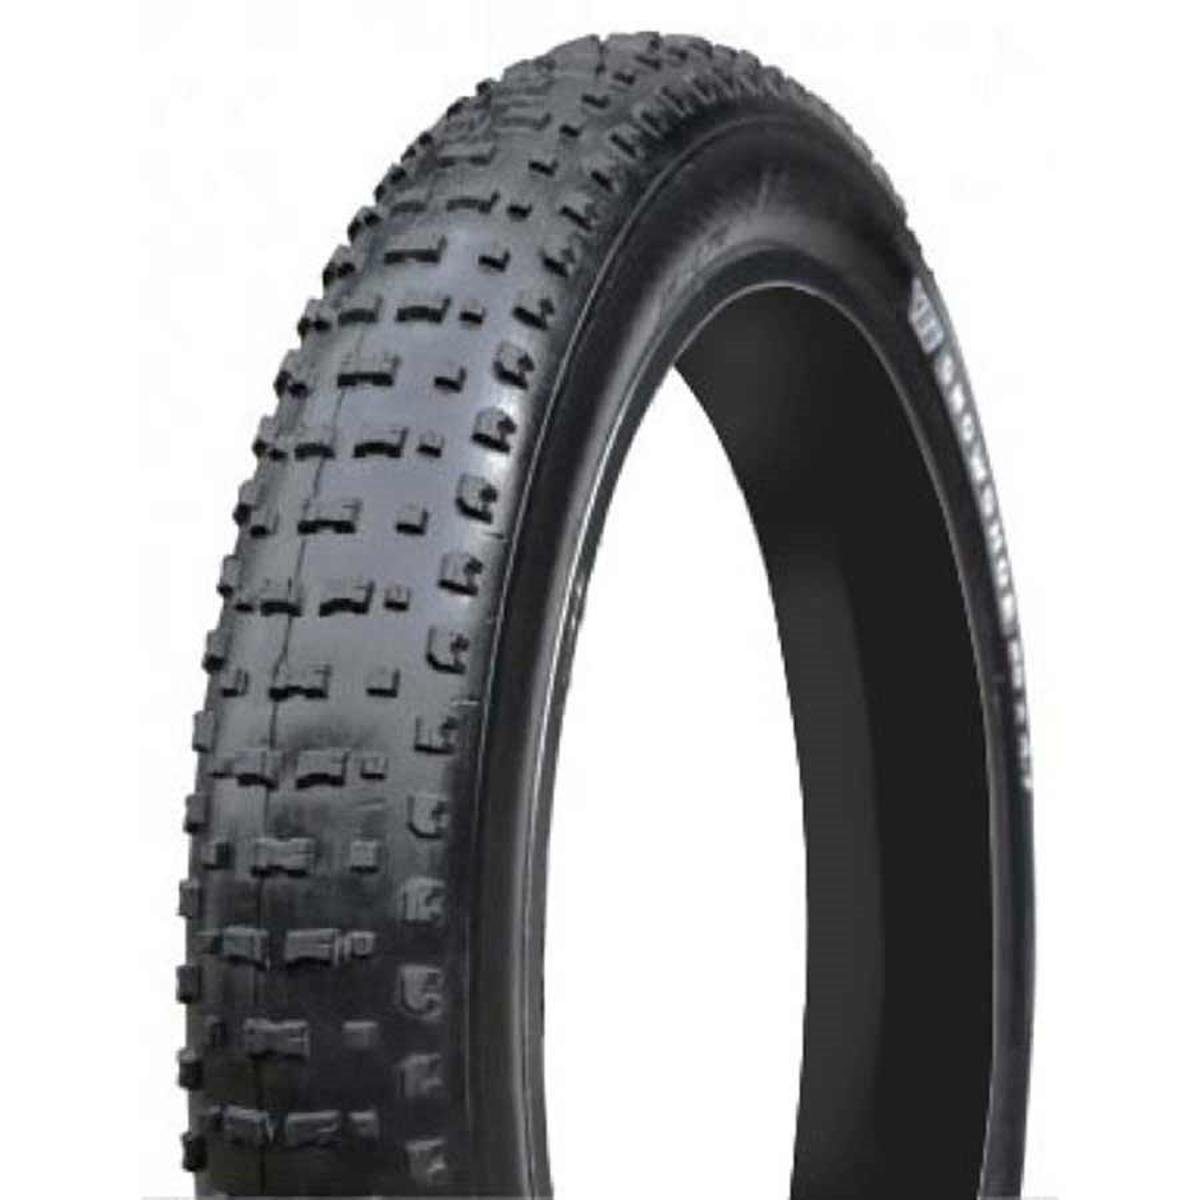 Vee Tire Co。Snowshoe 2 x l Fat Bikeタイヤ: 26